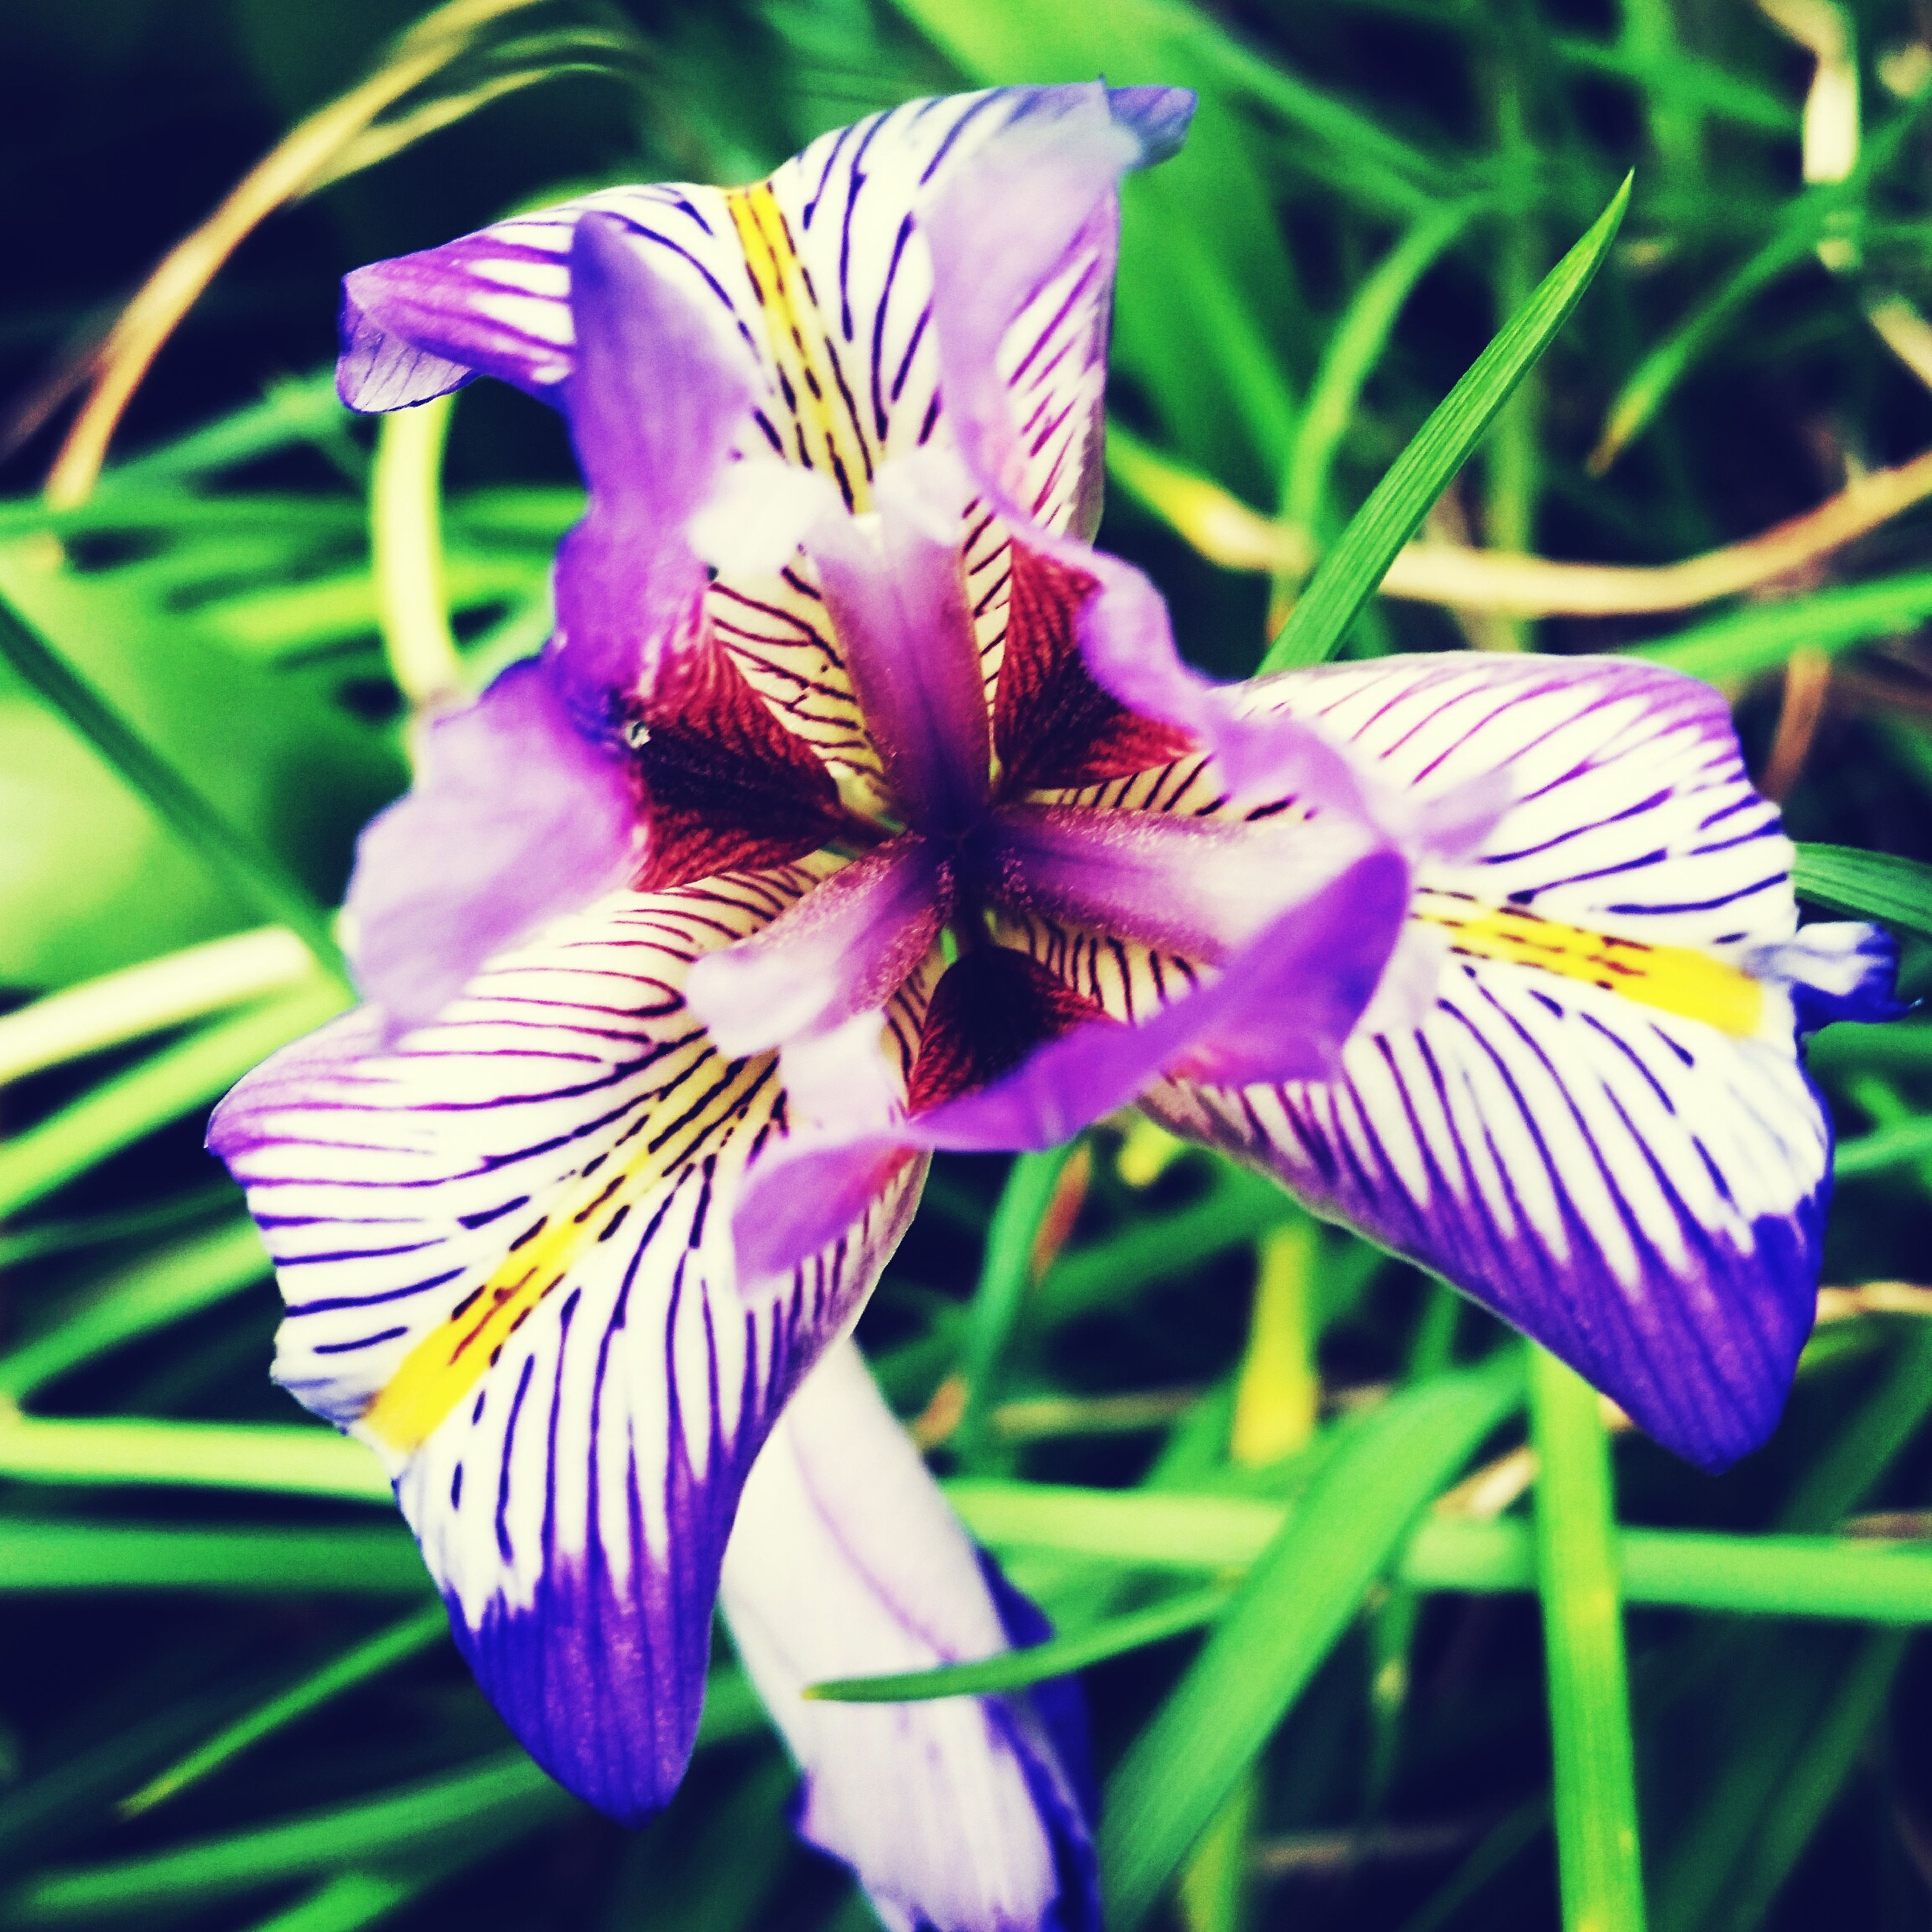 flower, petal, freshness, fragility, flower head, purple, growth, beauty in nature, close-up, nature, blooming, focus on foreground, pollen, plant, stamen, in bloom, blossom, stem, single flower, botany